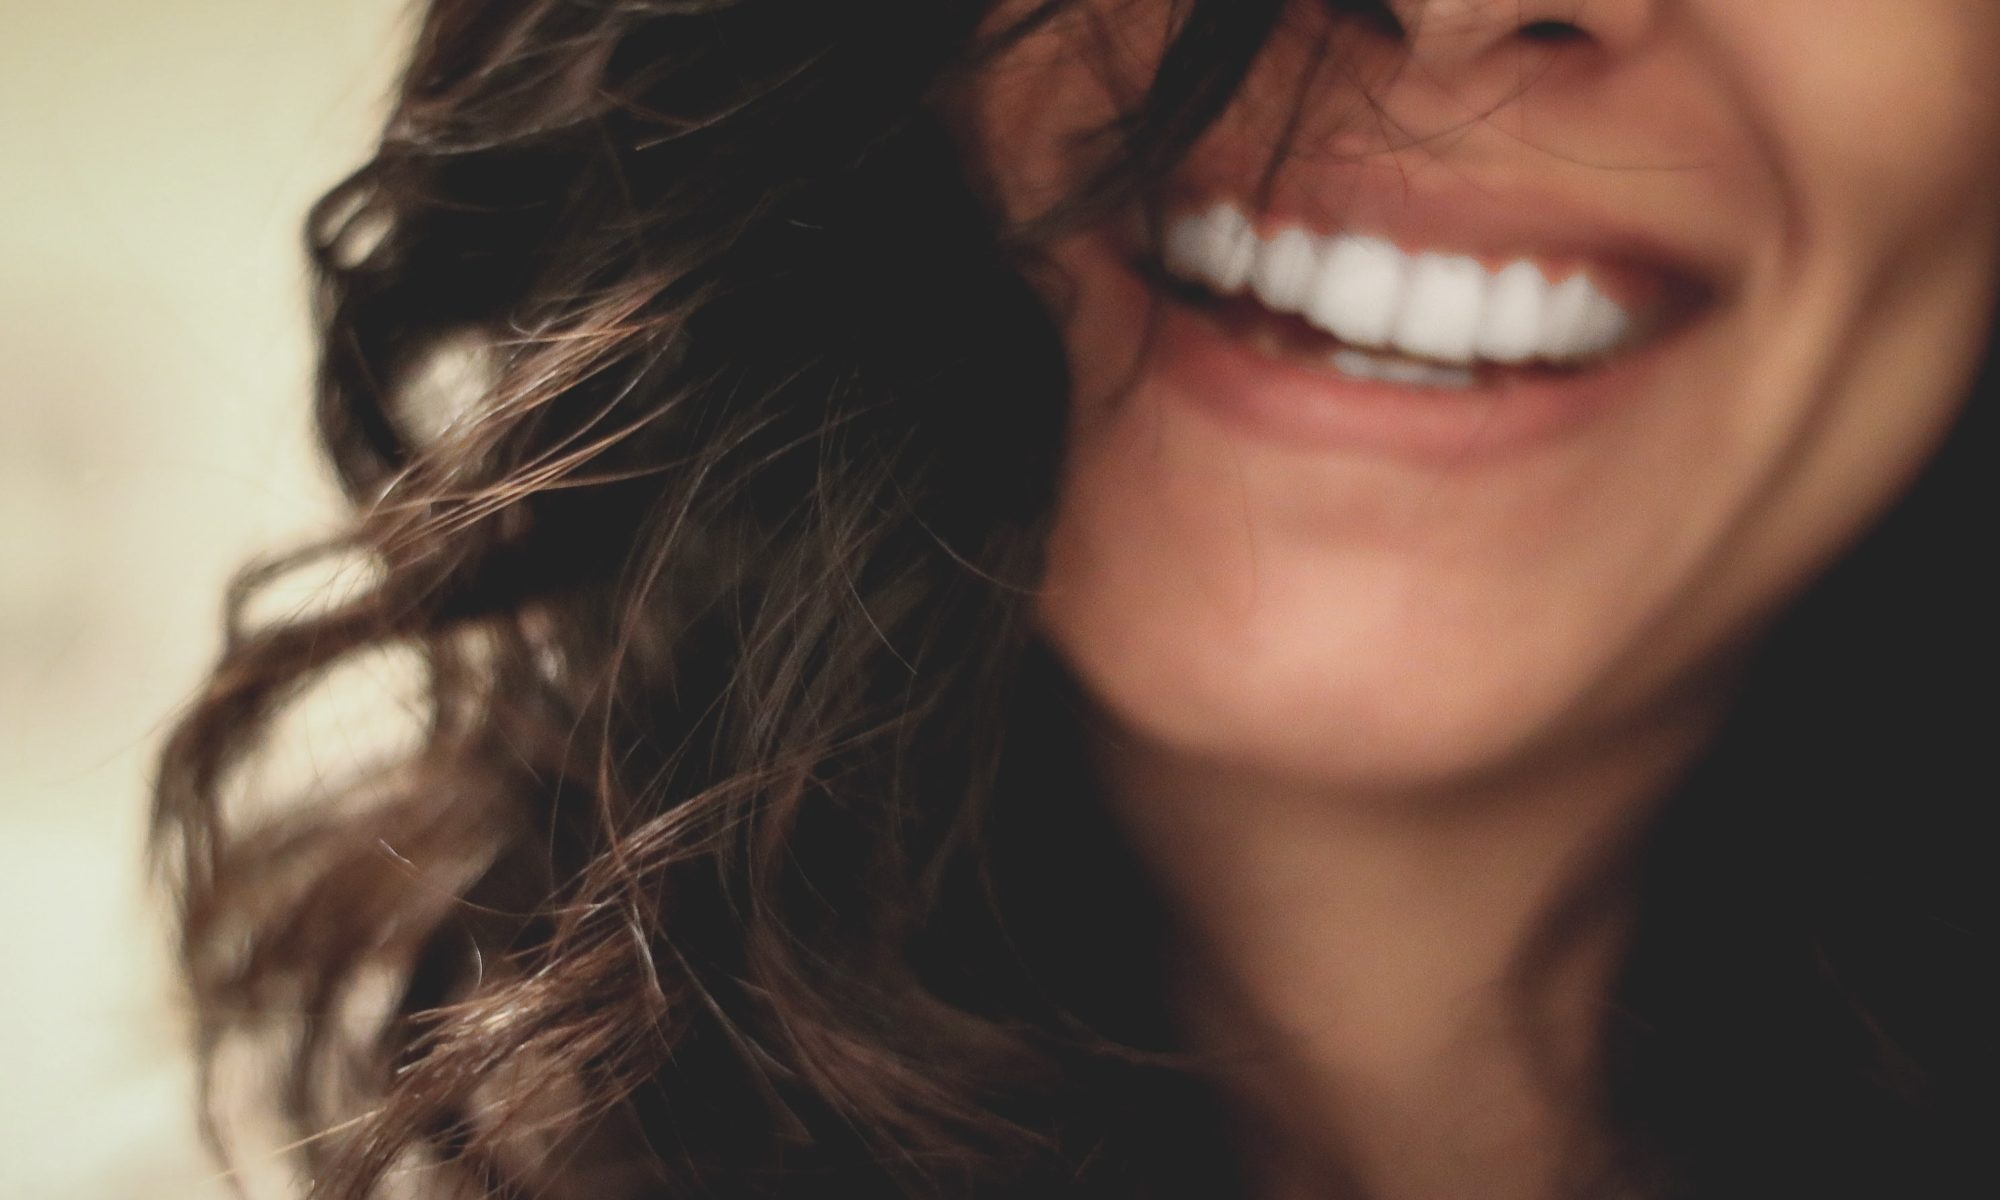 Woman smiling